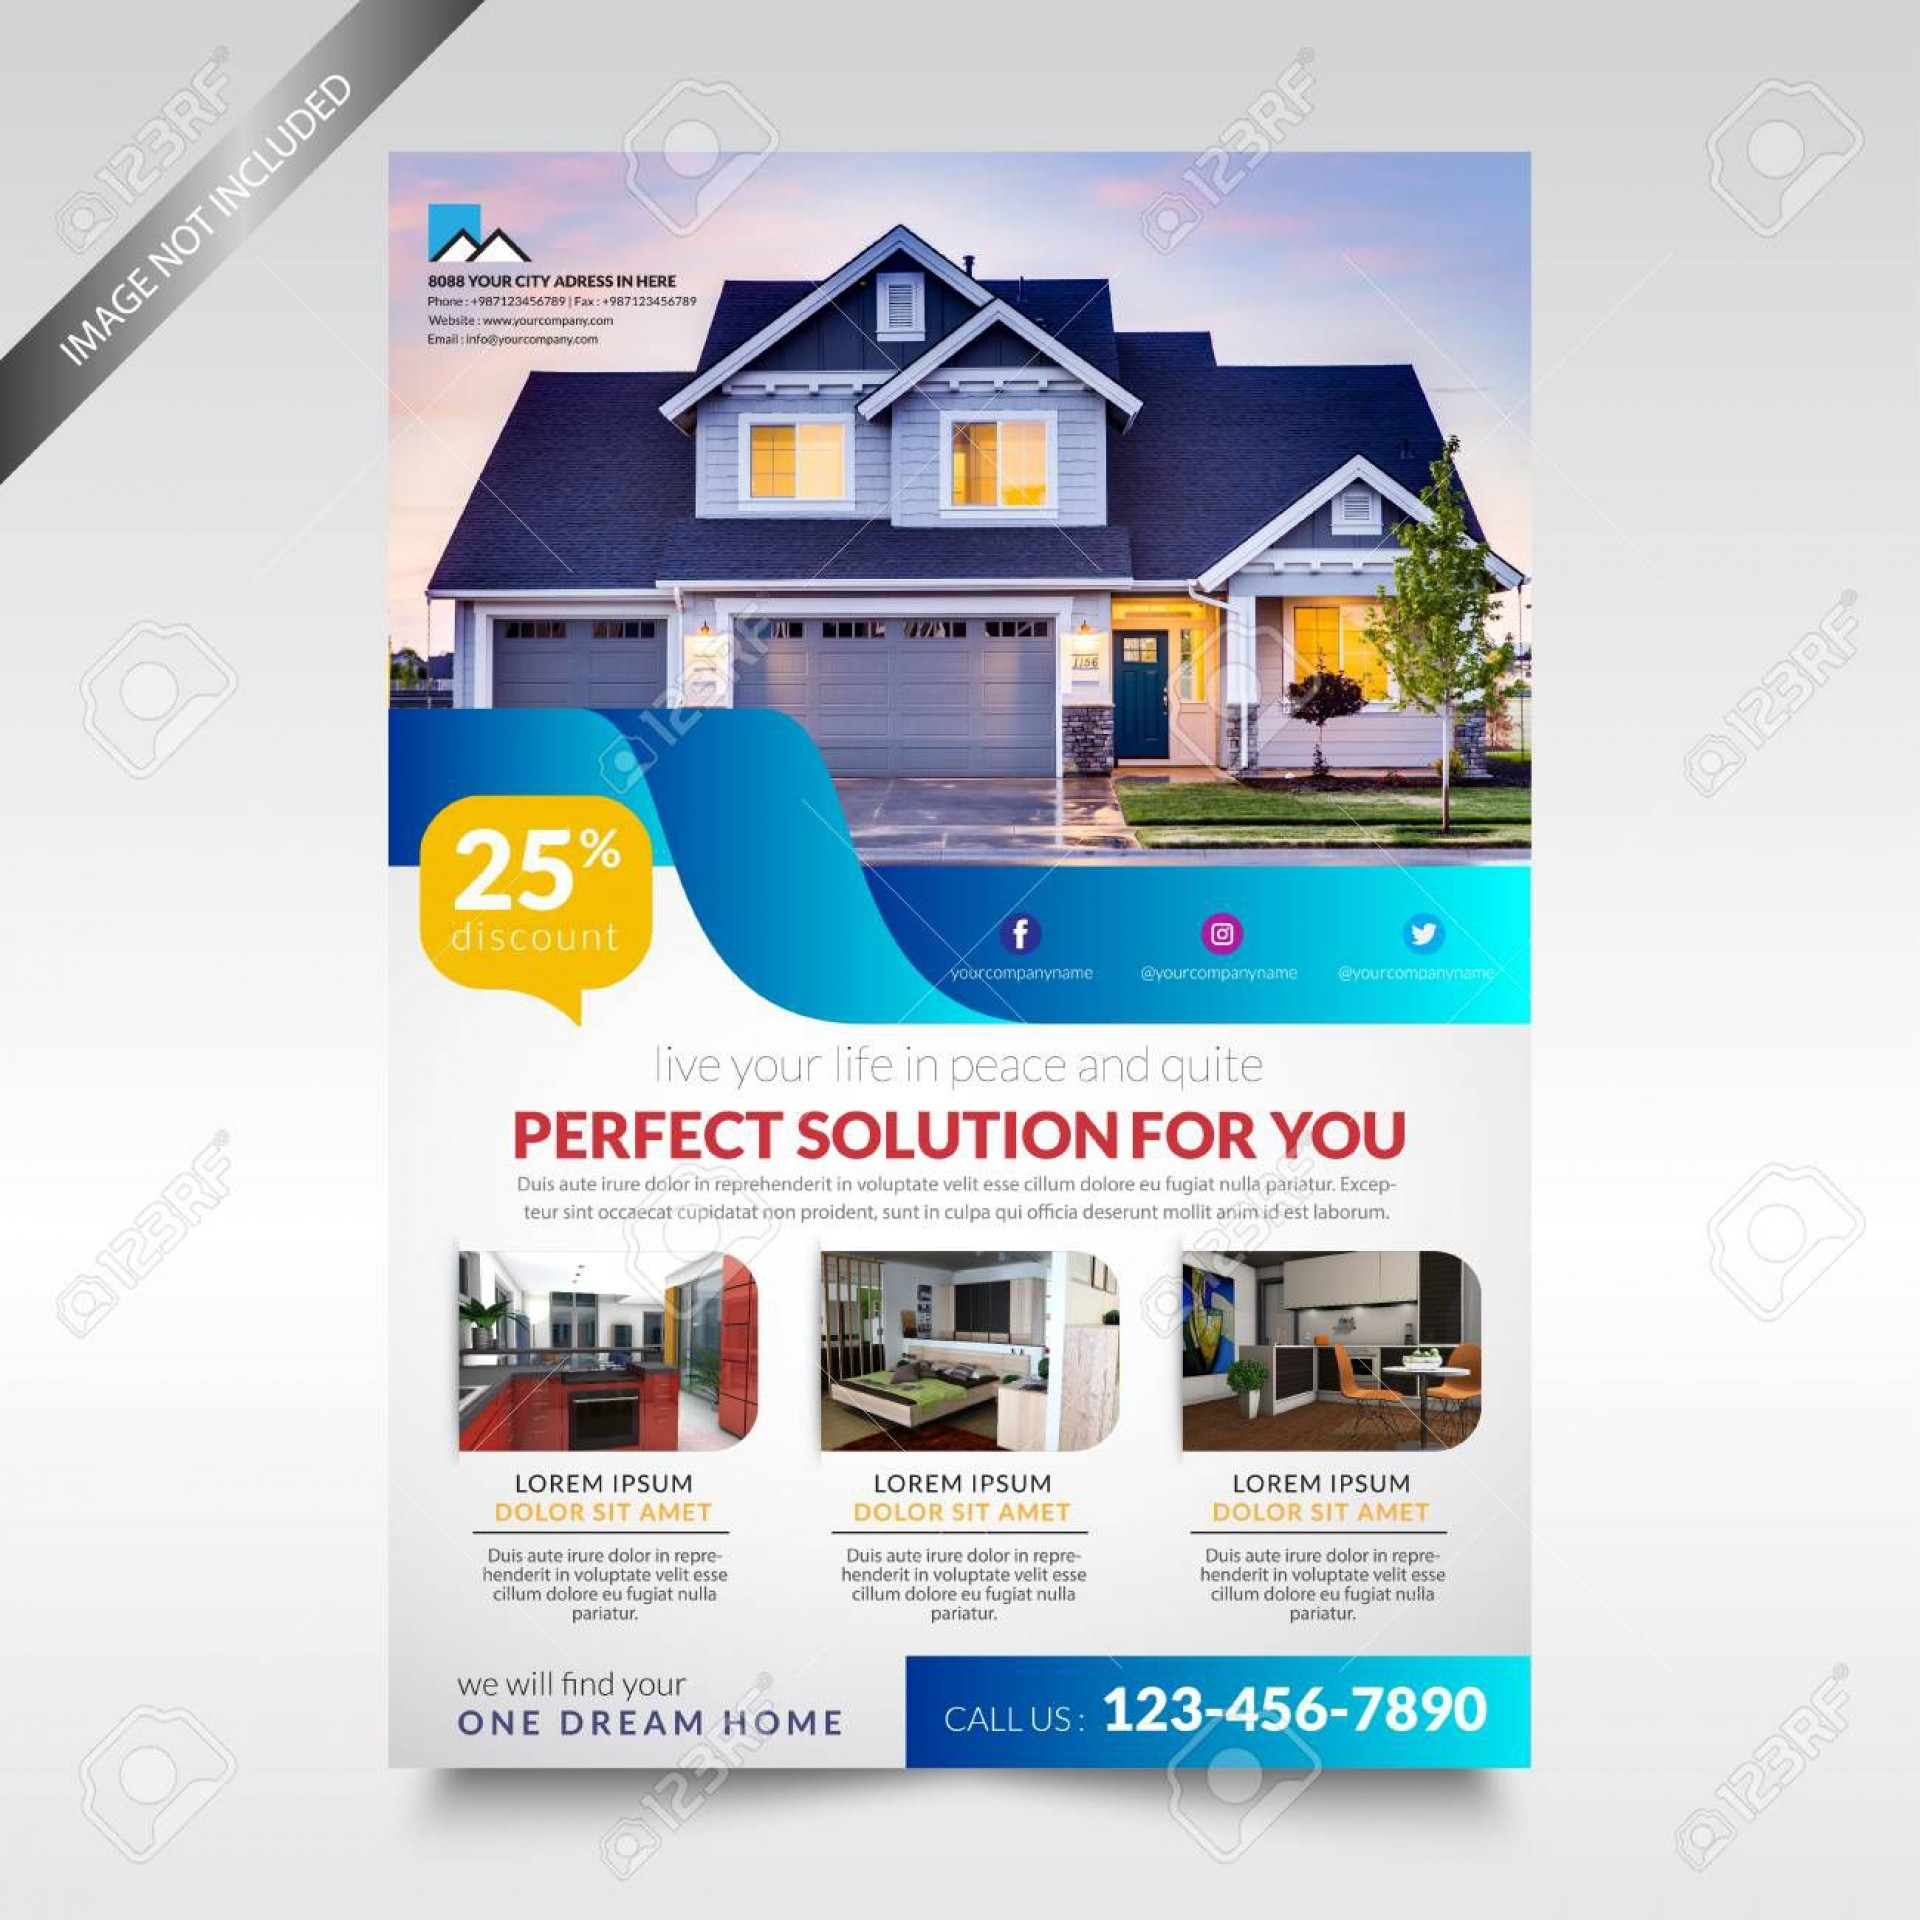 001 Beautiful Real Estate Flyer Template High Definition  Publisher Word Free1920